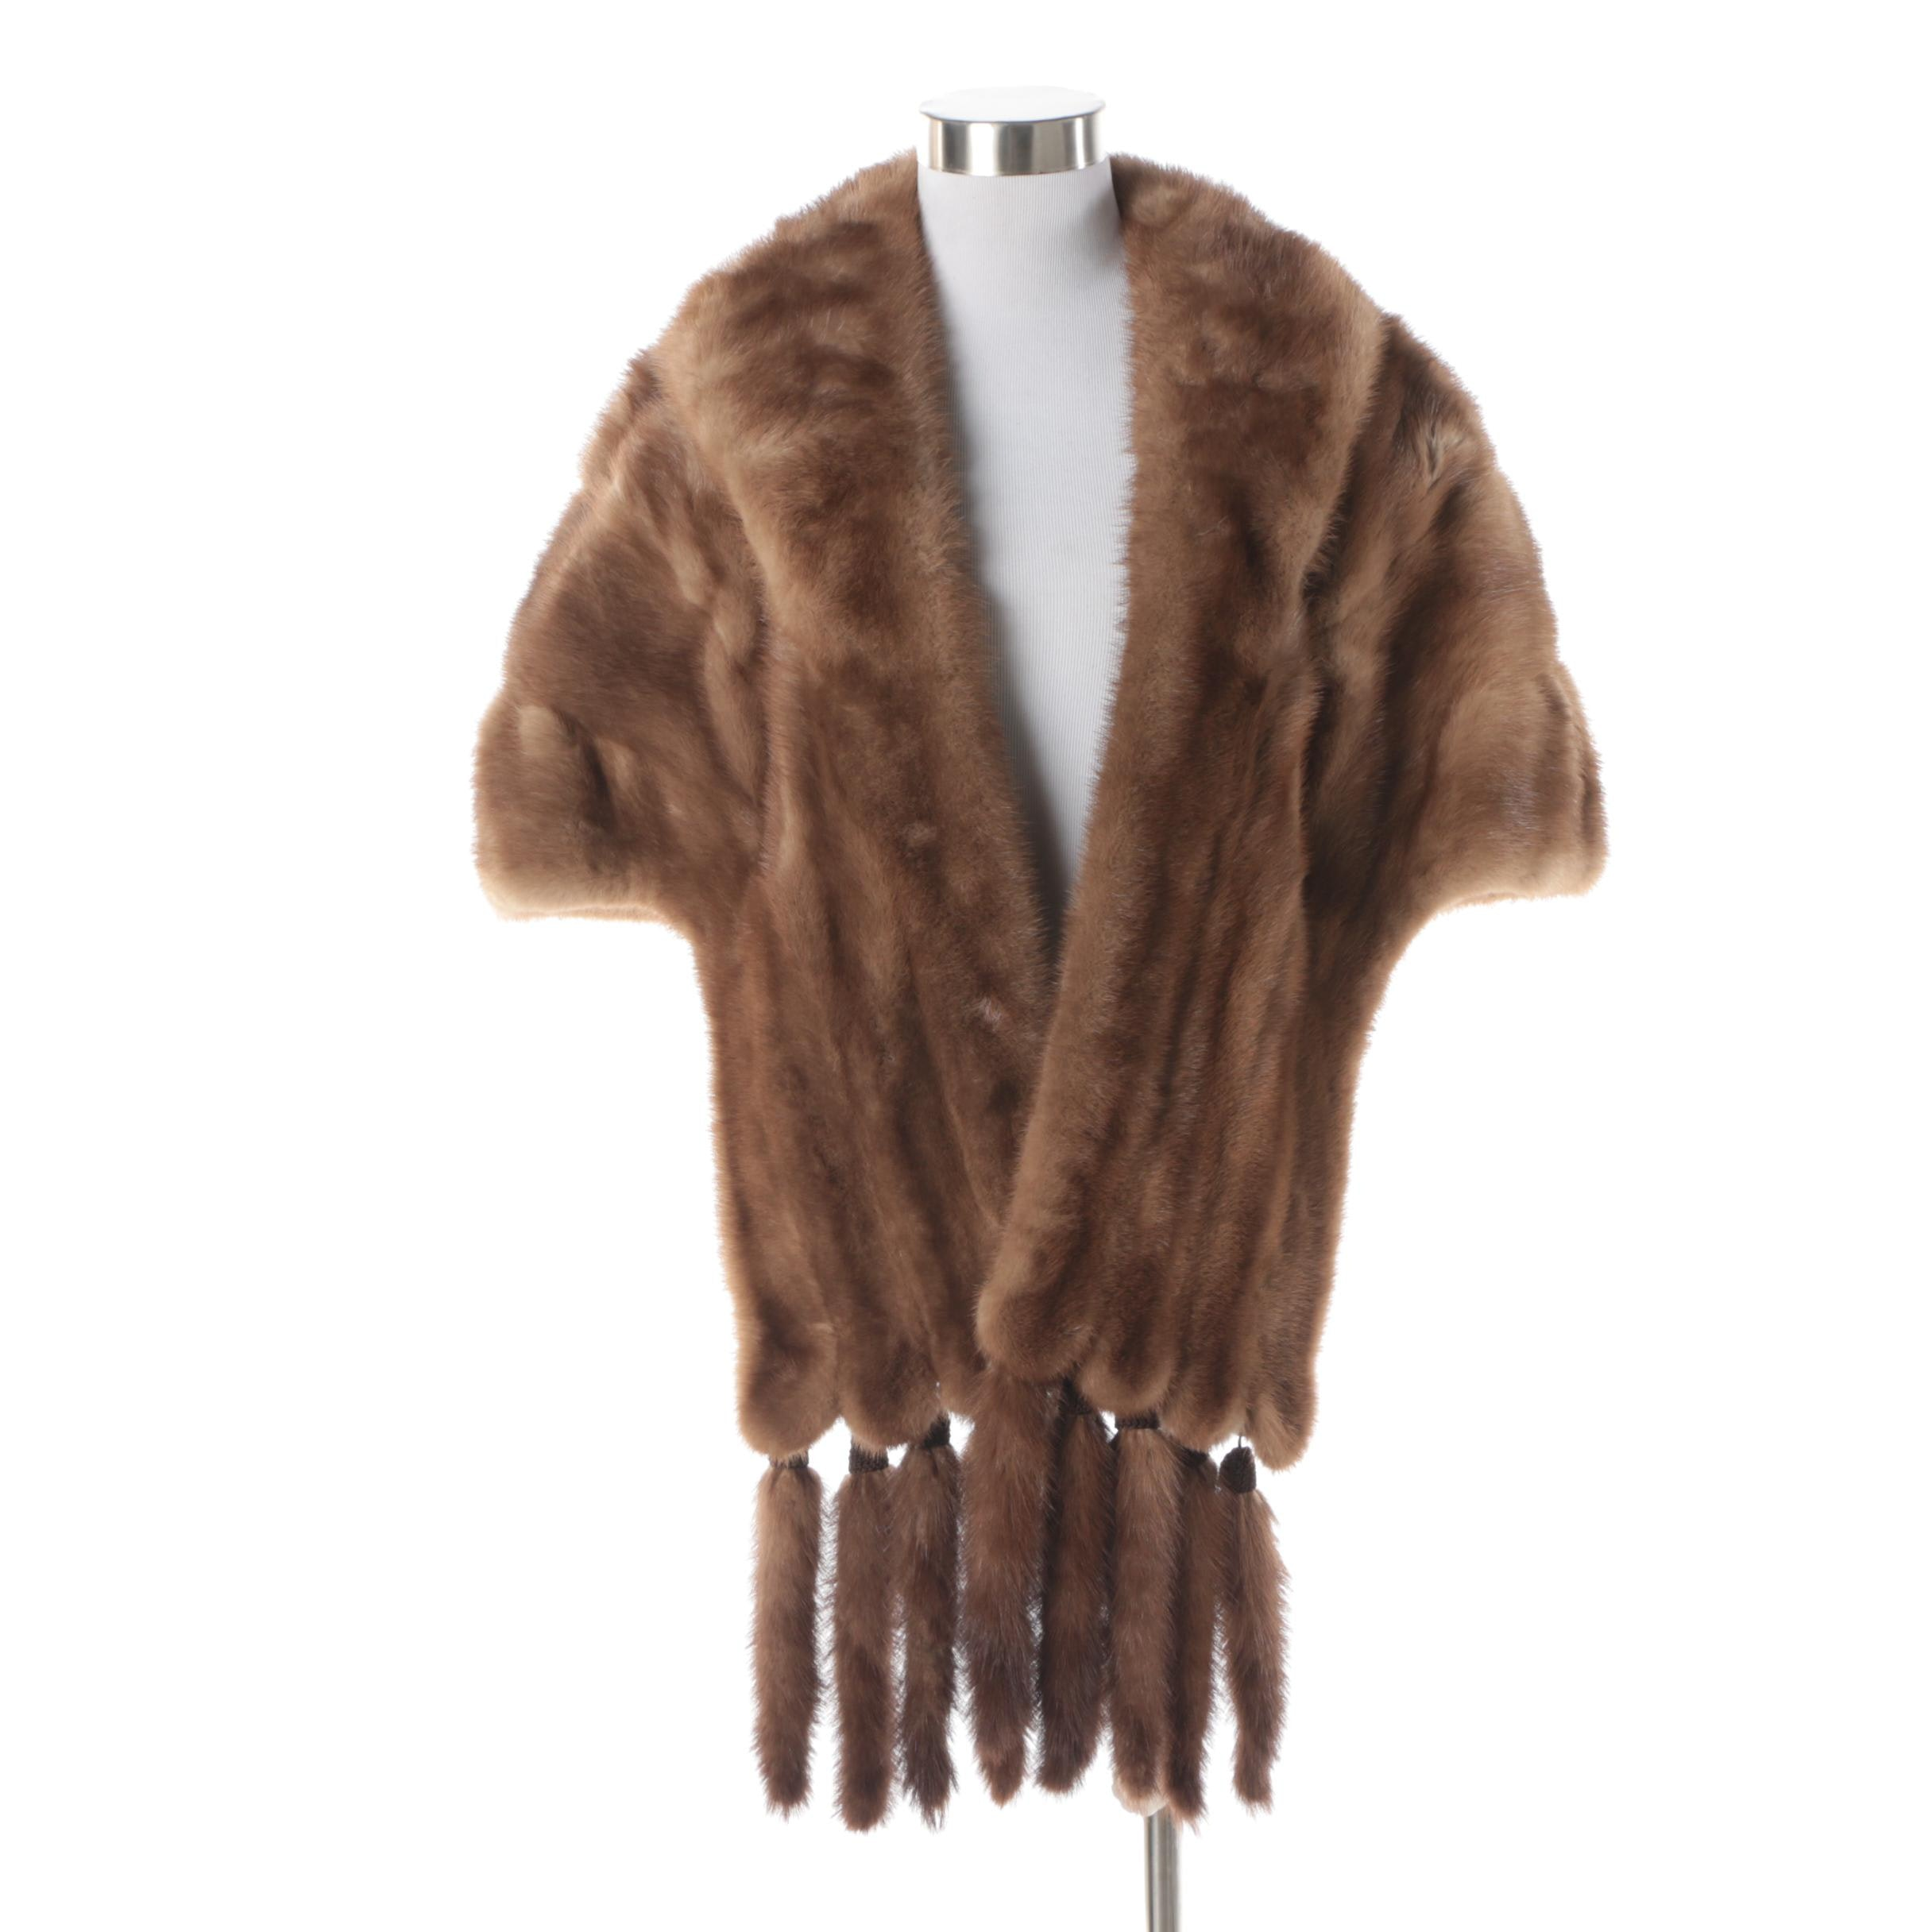 Vintage Brown Mink Fur Stole with Detachable Mink Tails